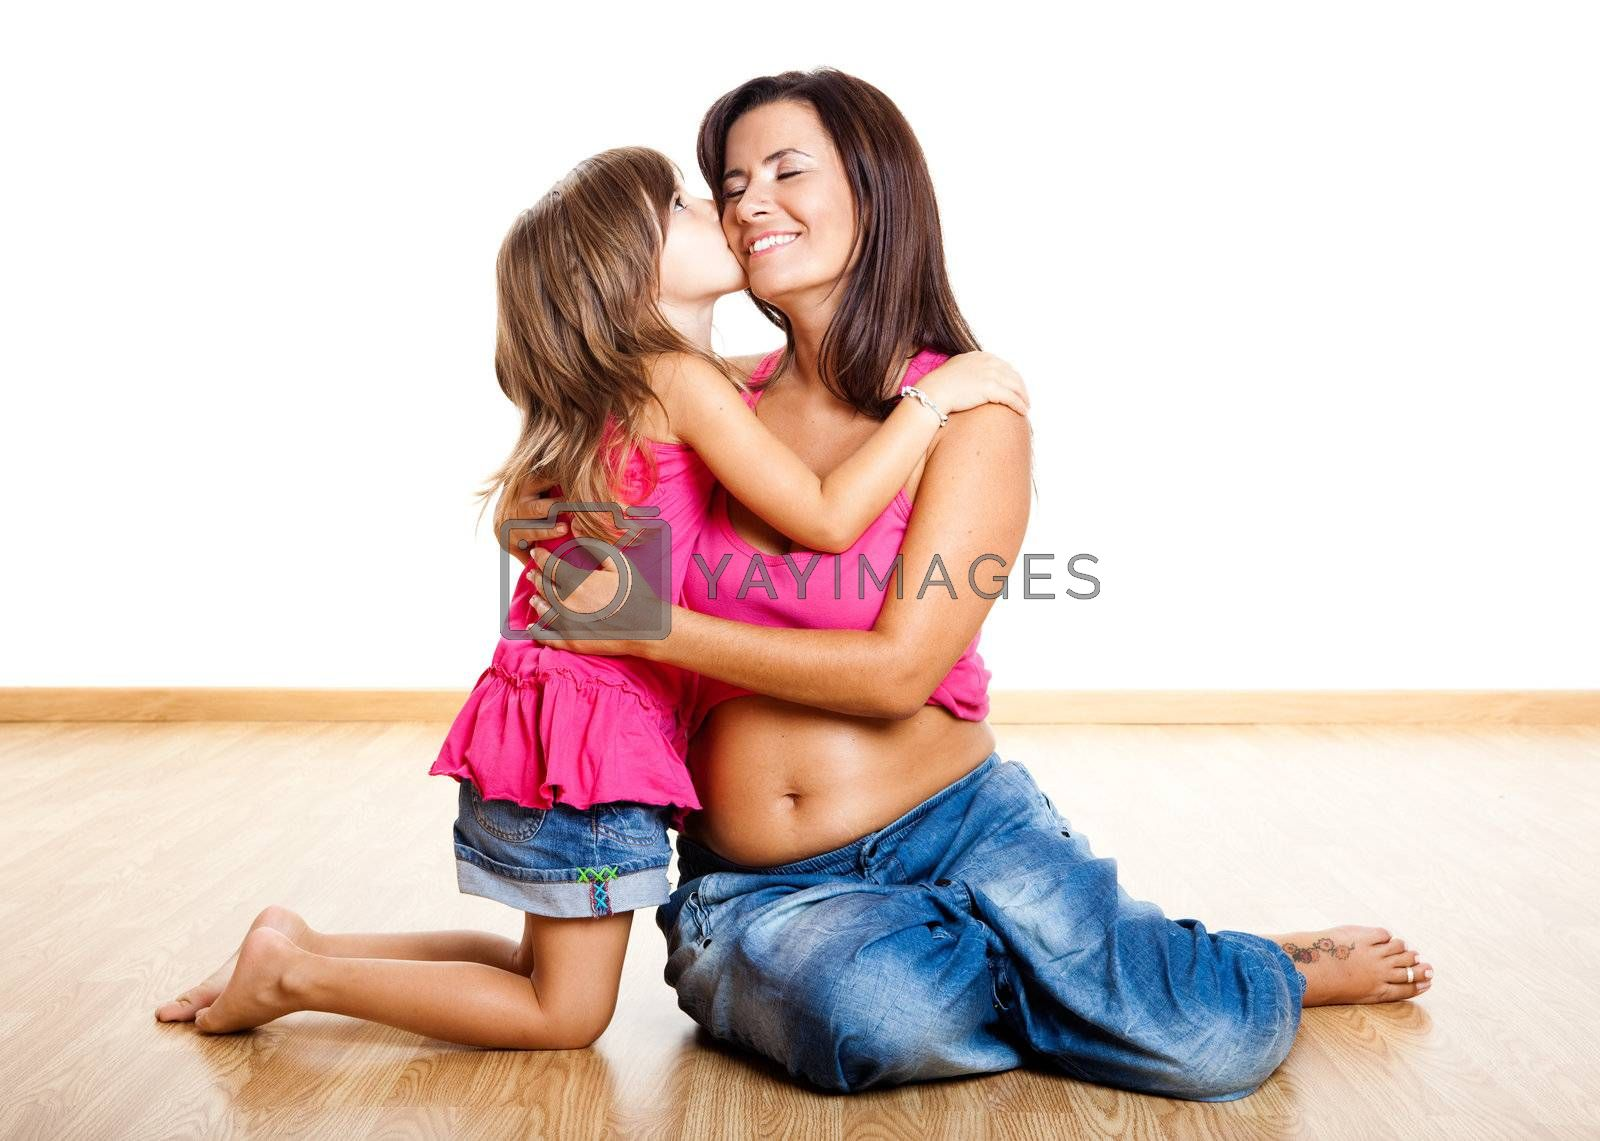 Pregnant woman with her daughter by Iko